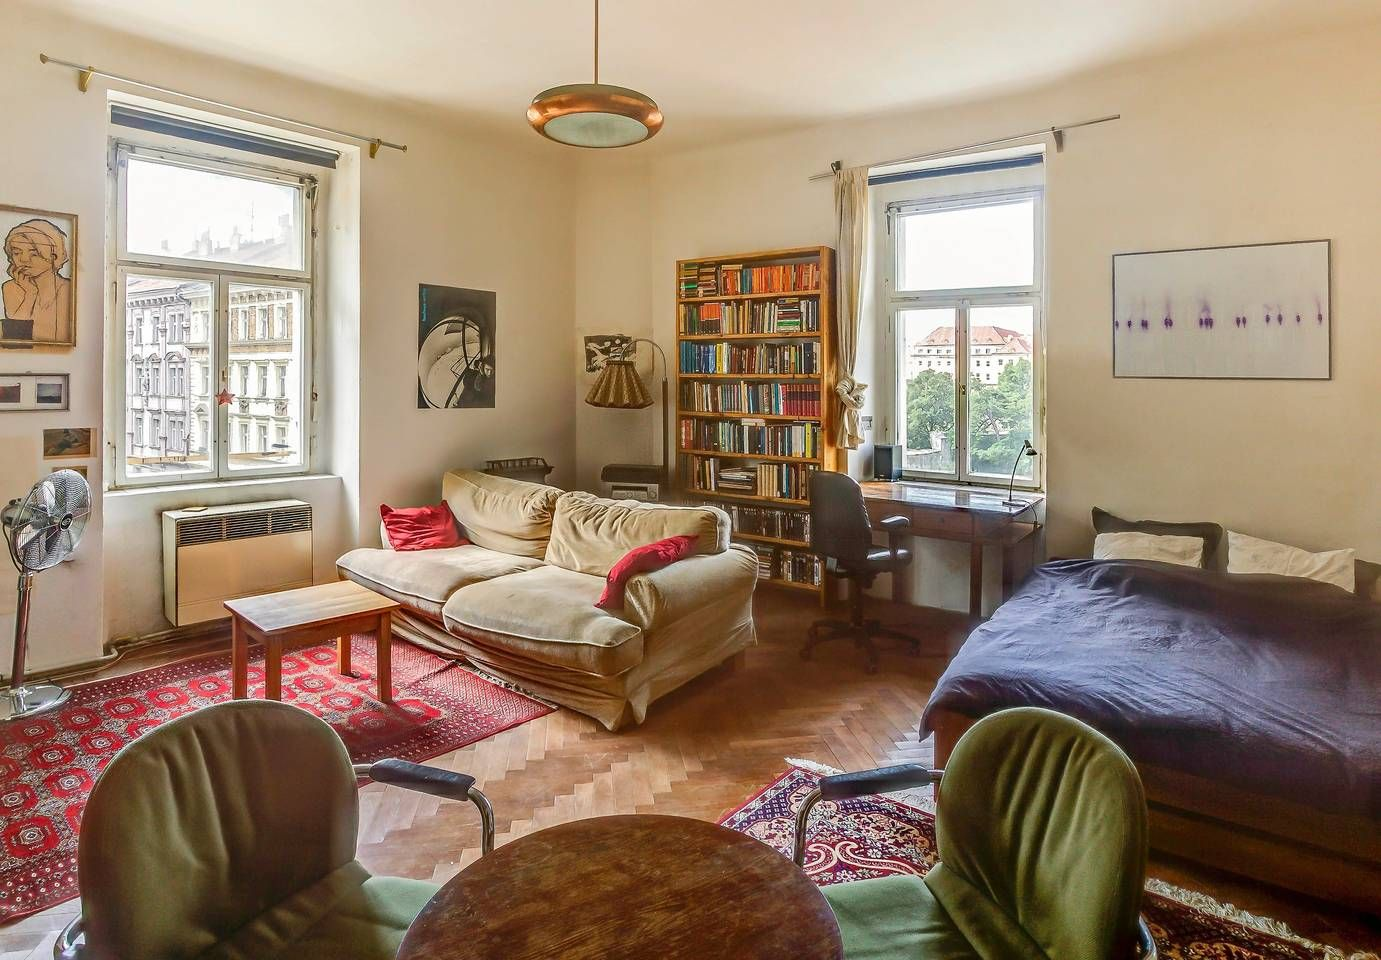 Bookseller's Sunny Flat - Apartments for Rent in Prague ...